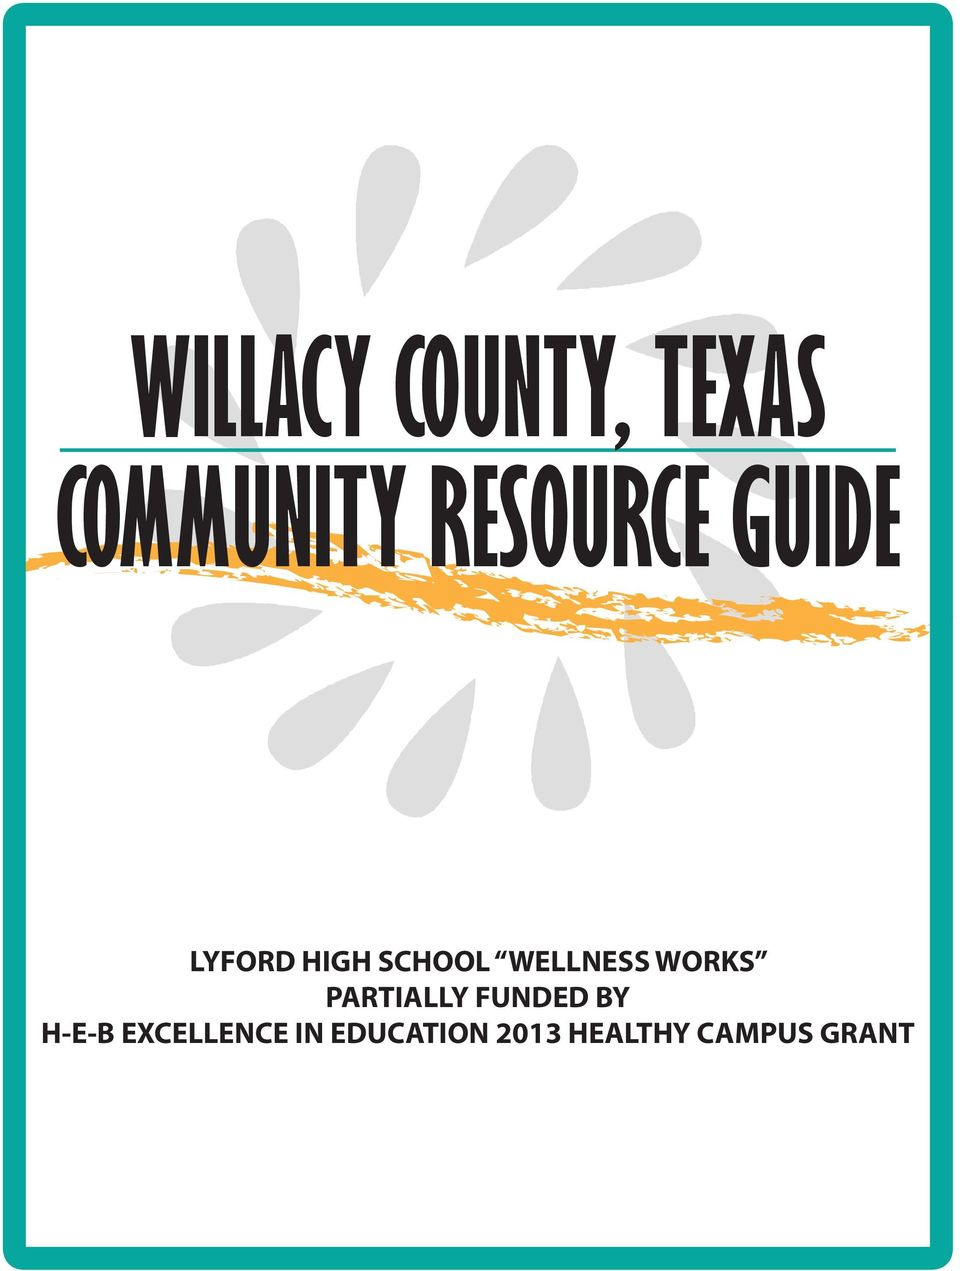 WILLACY COUNTY, TEXAS COMMUNITY RESOURCE GUIDE - PDF